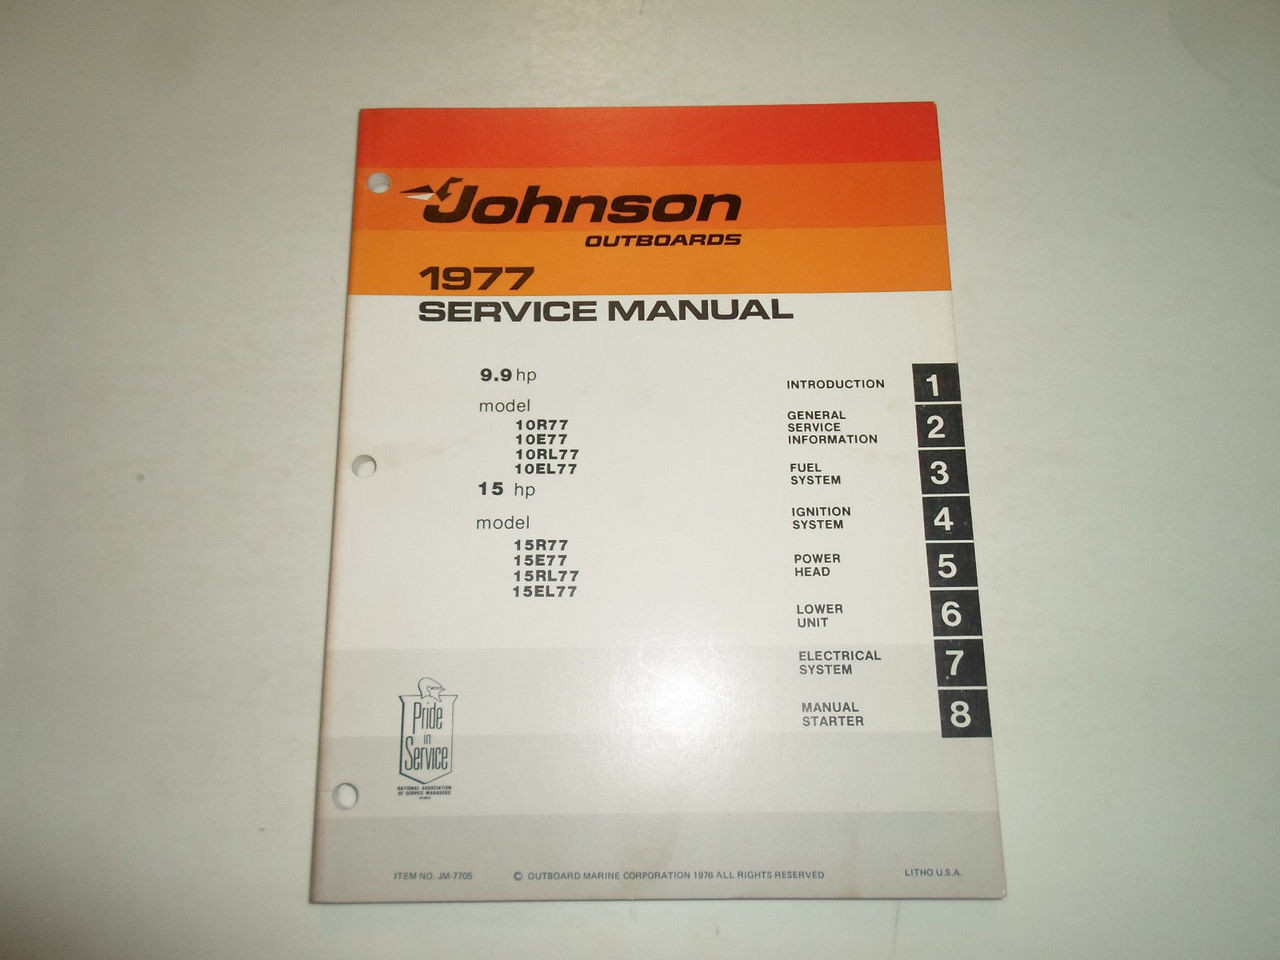 ... 1977 Johnson Outboards Service Manual 9.9 15 HP 10R77 15R77 FACTORY  STAINED OEM. Image 1